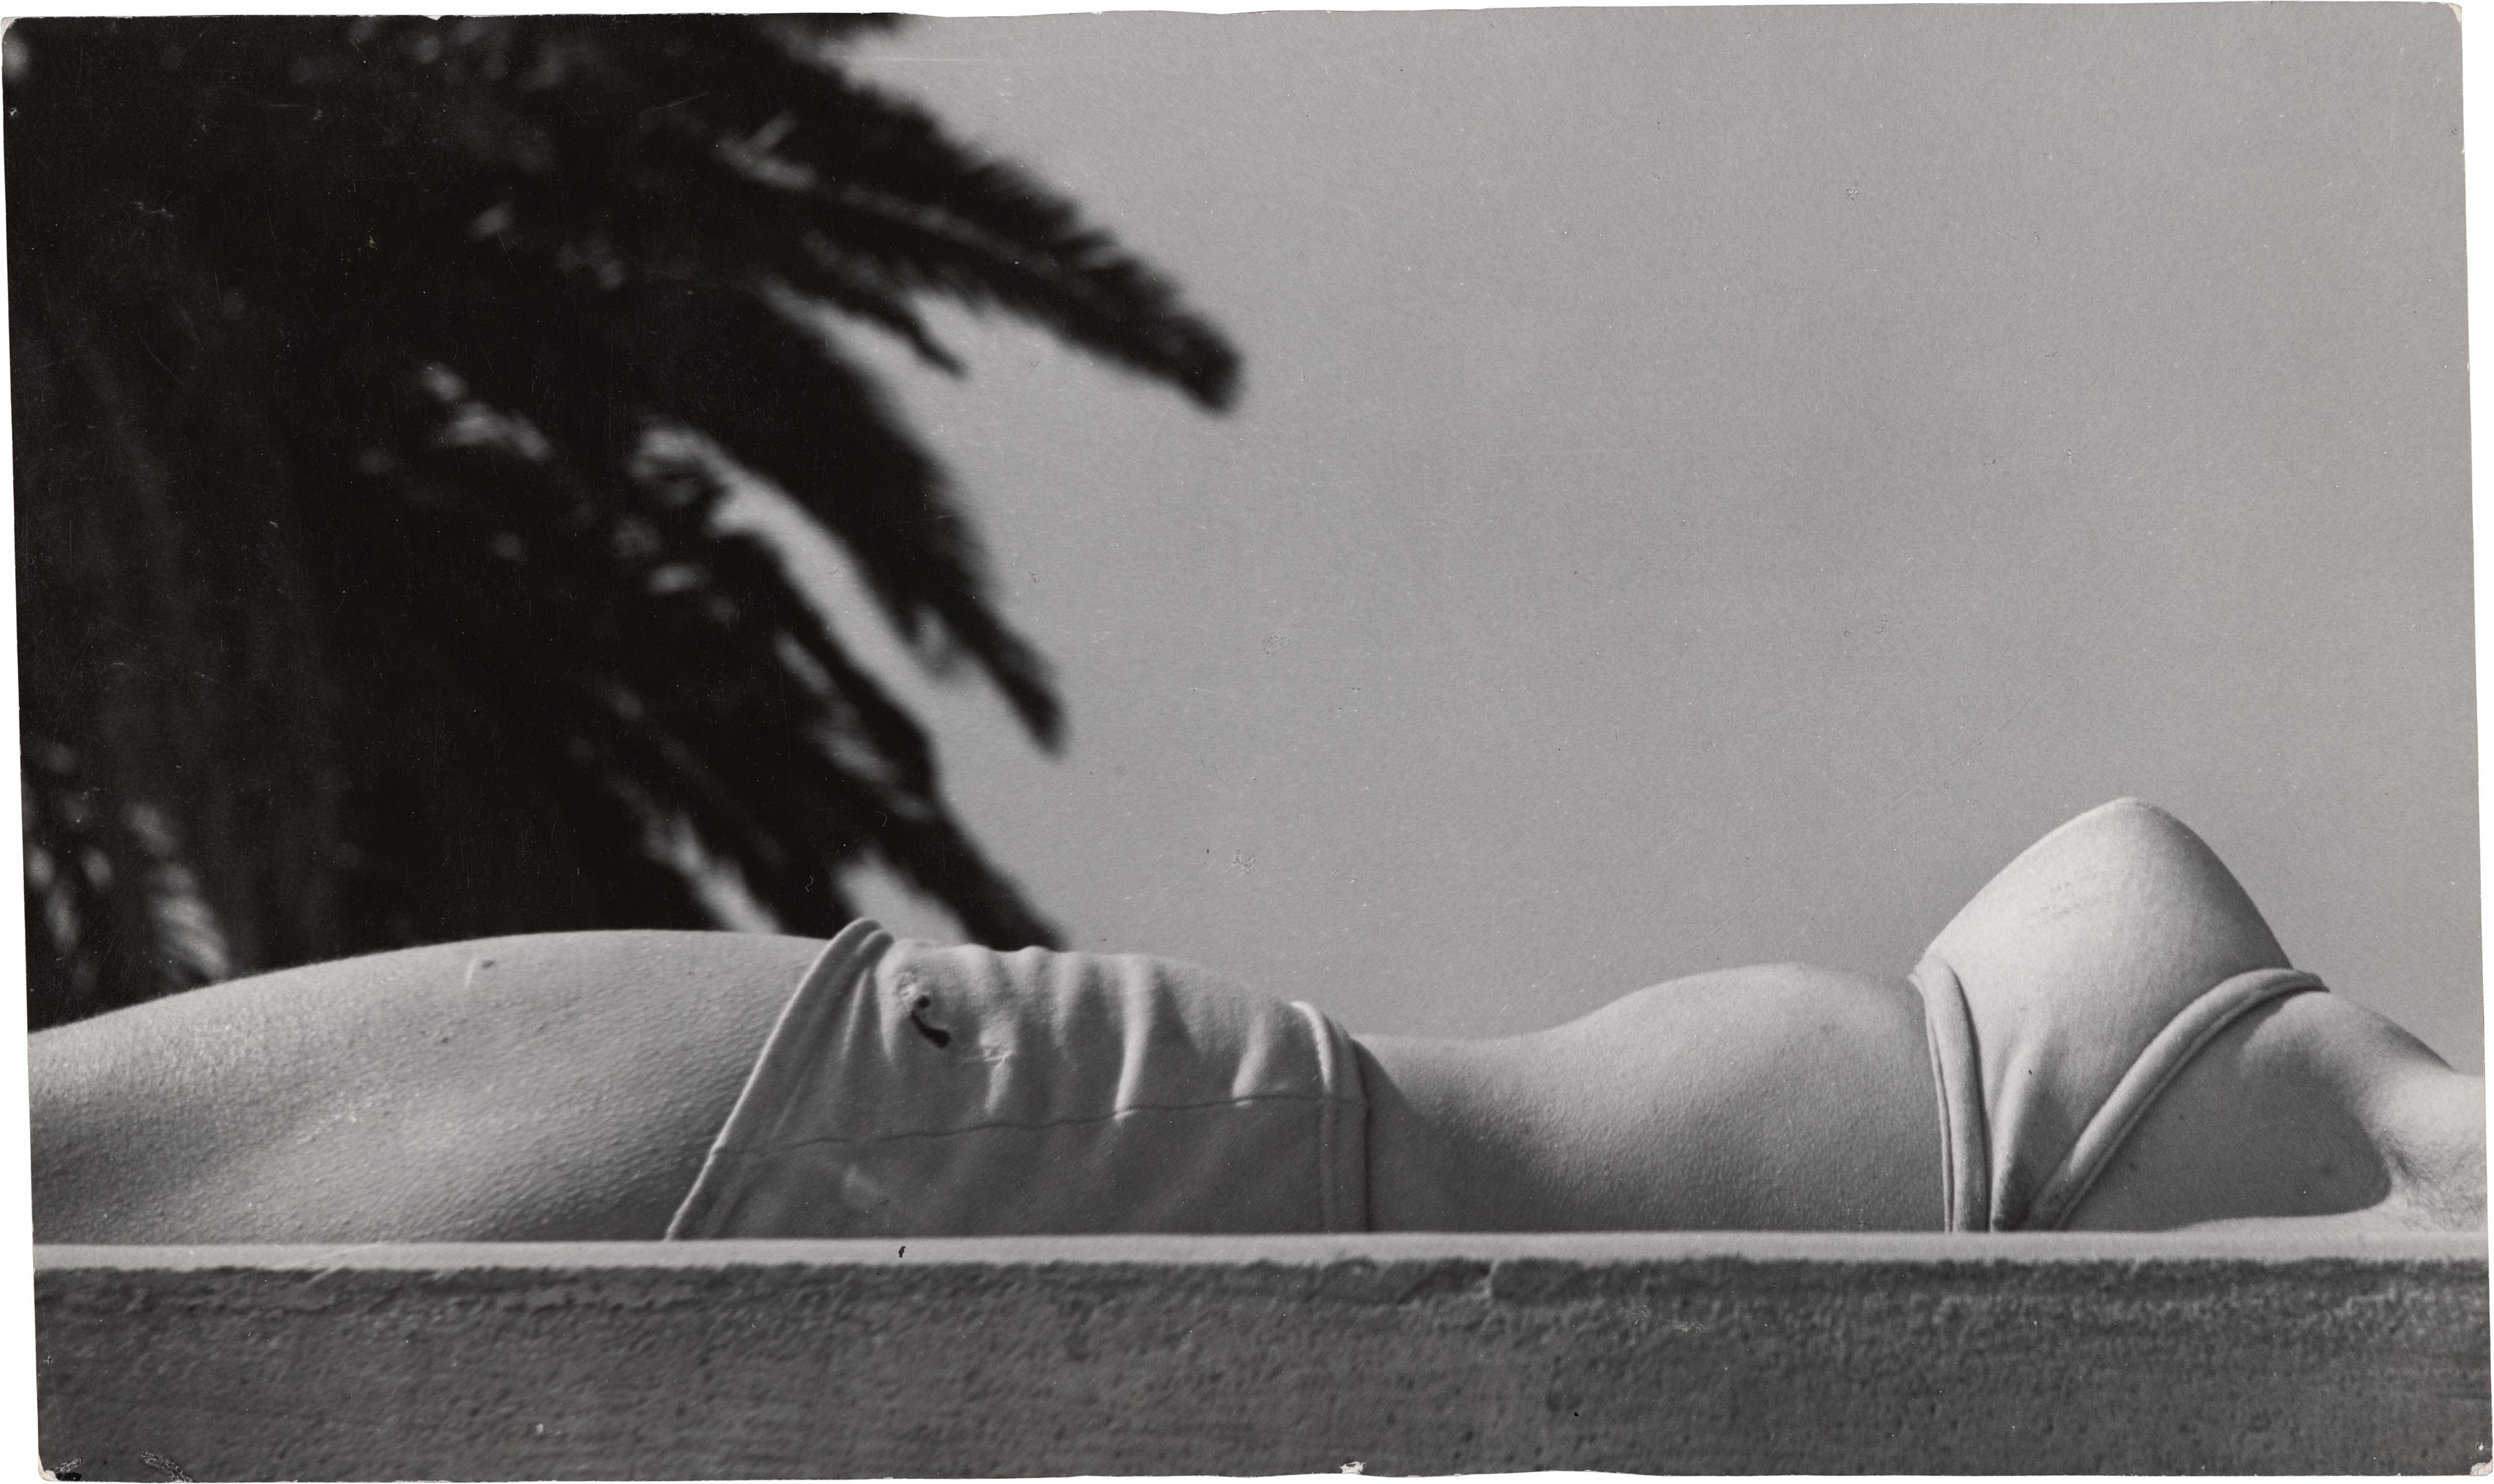 Guy Bourdin, Untouched - Vogue Paris, StyleZeitgeist, SteidlDangin, Steidl, Photography, Guy Bourdin, fashion photography